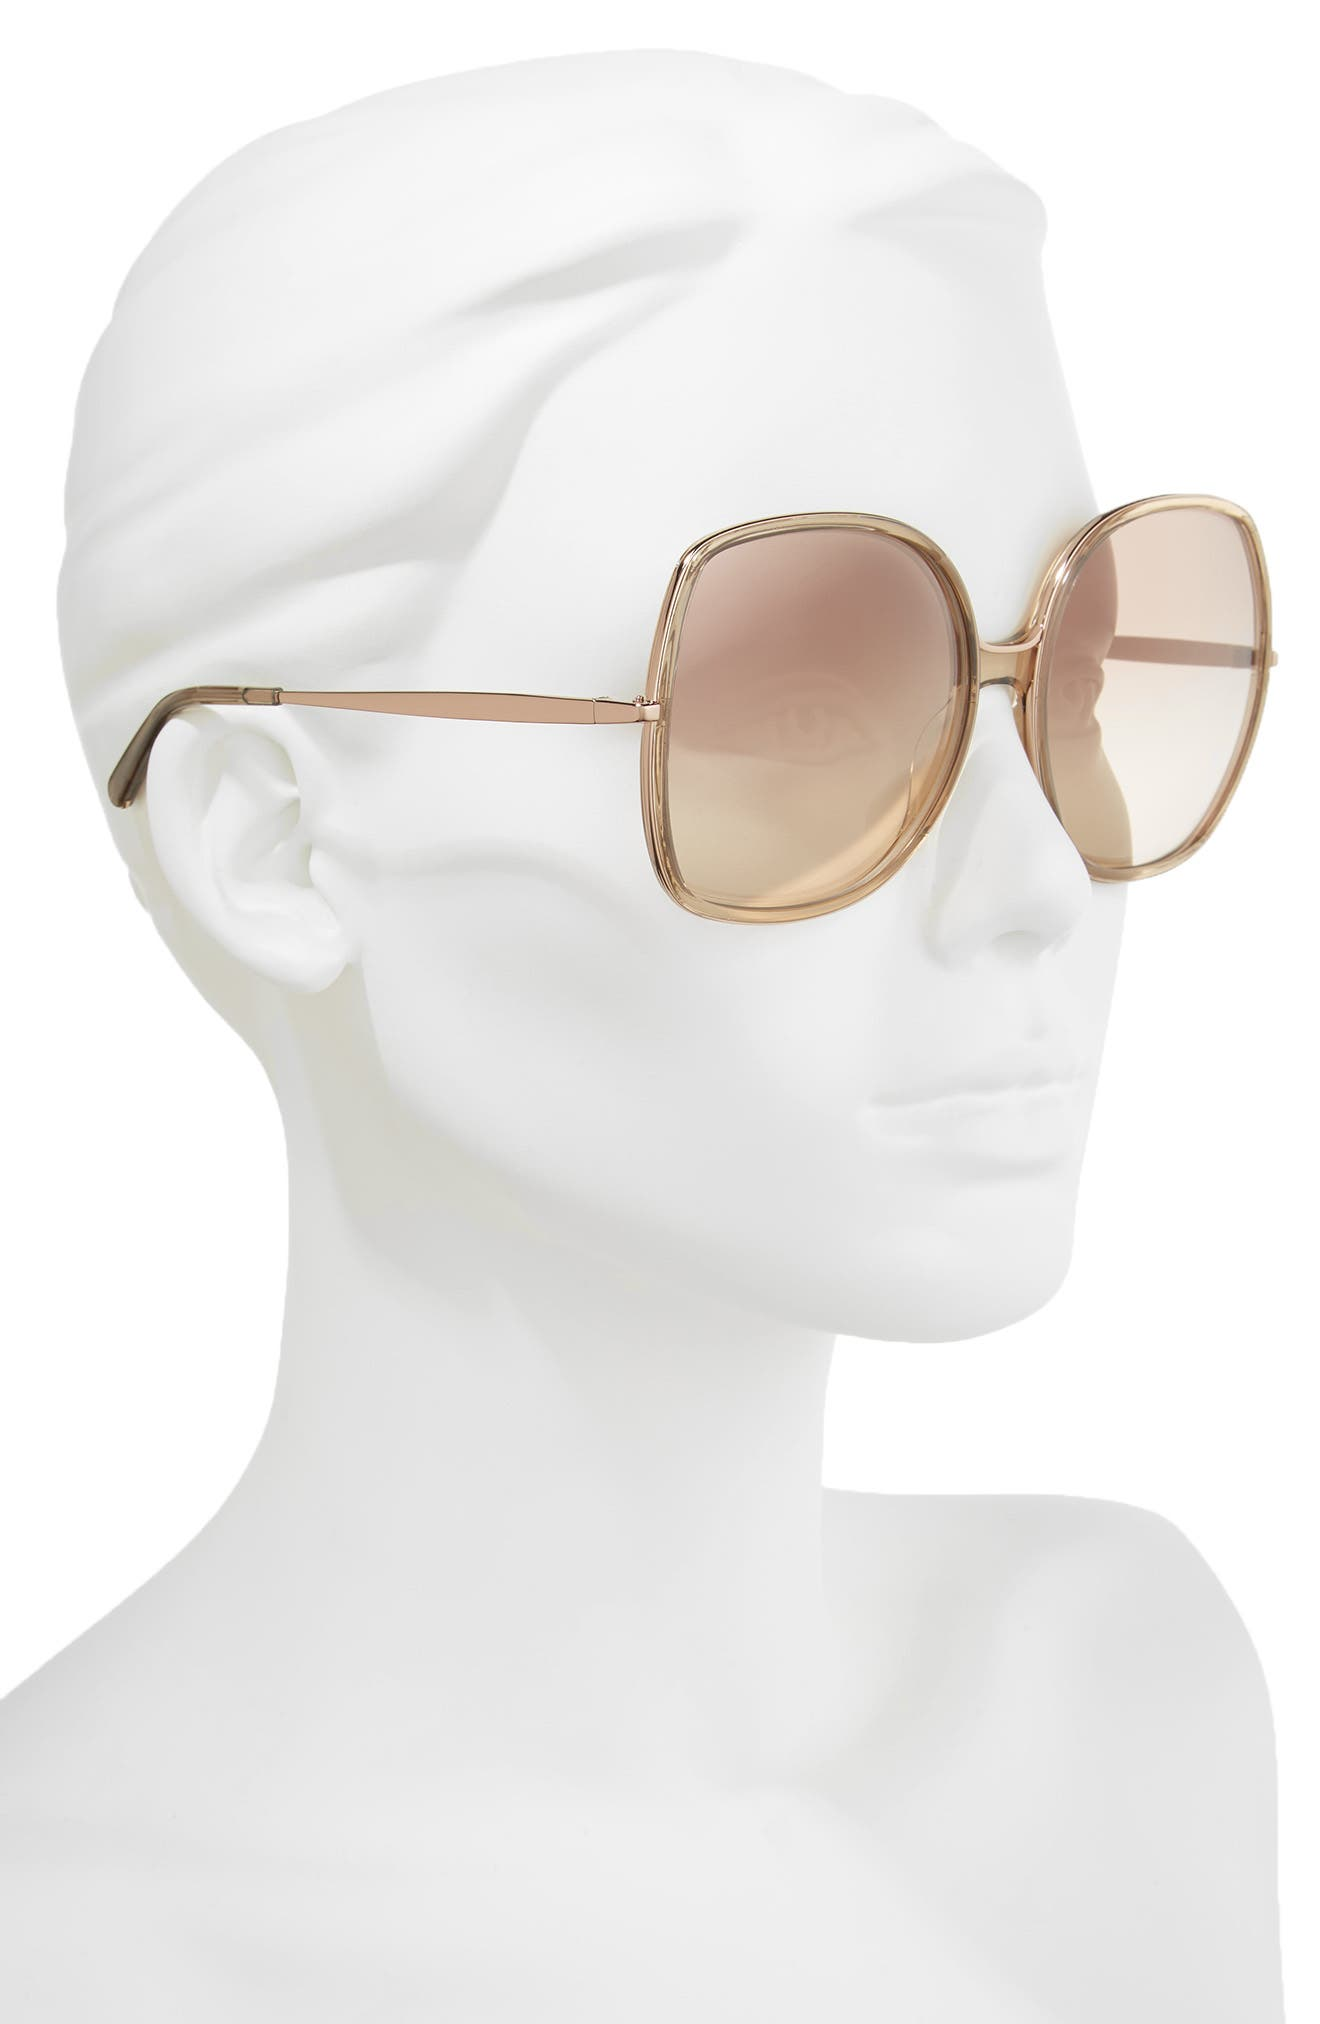 62mm Oversized Gradient Lens Square Sunglasses,                             Alternate thumbnail 2, color,                             NUDE